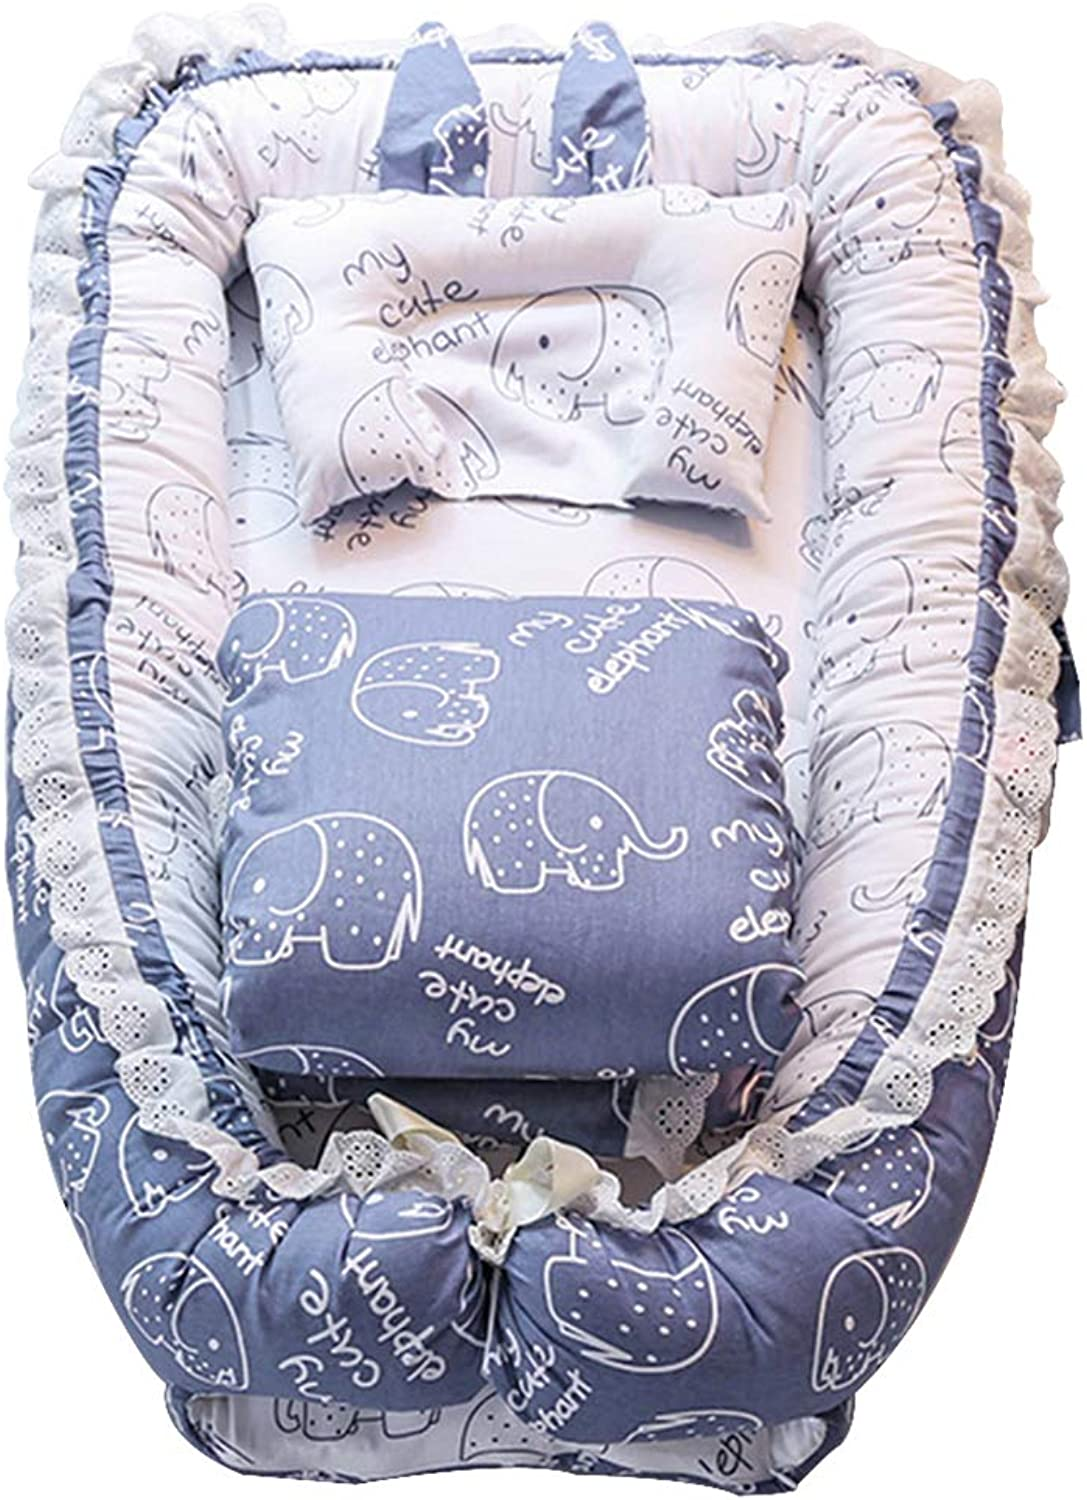 Portable Crib, Detachable Washable Cotton Baby Bedding, Cradle Safety Fence for 0-1 Years Old